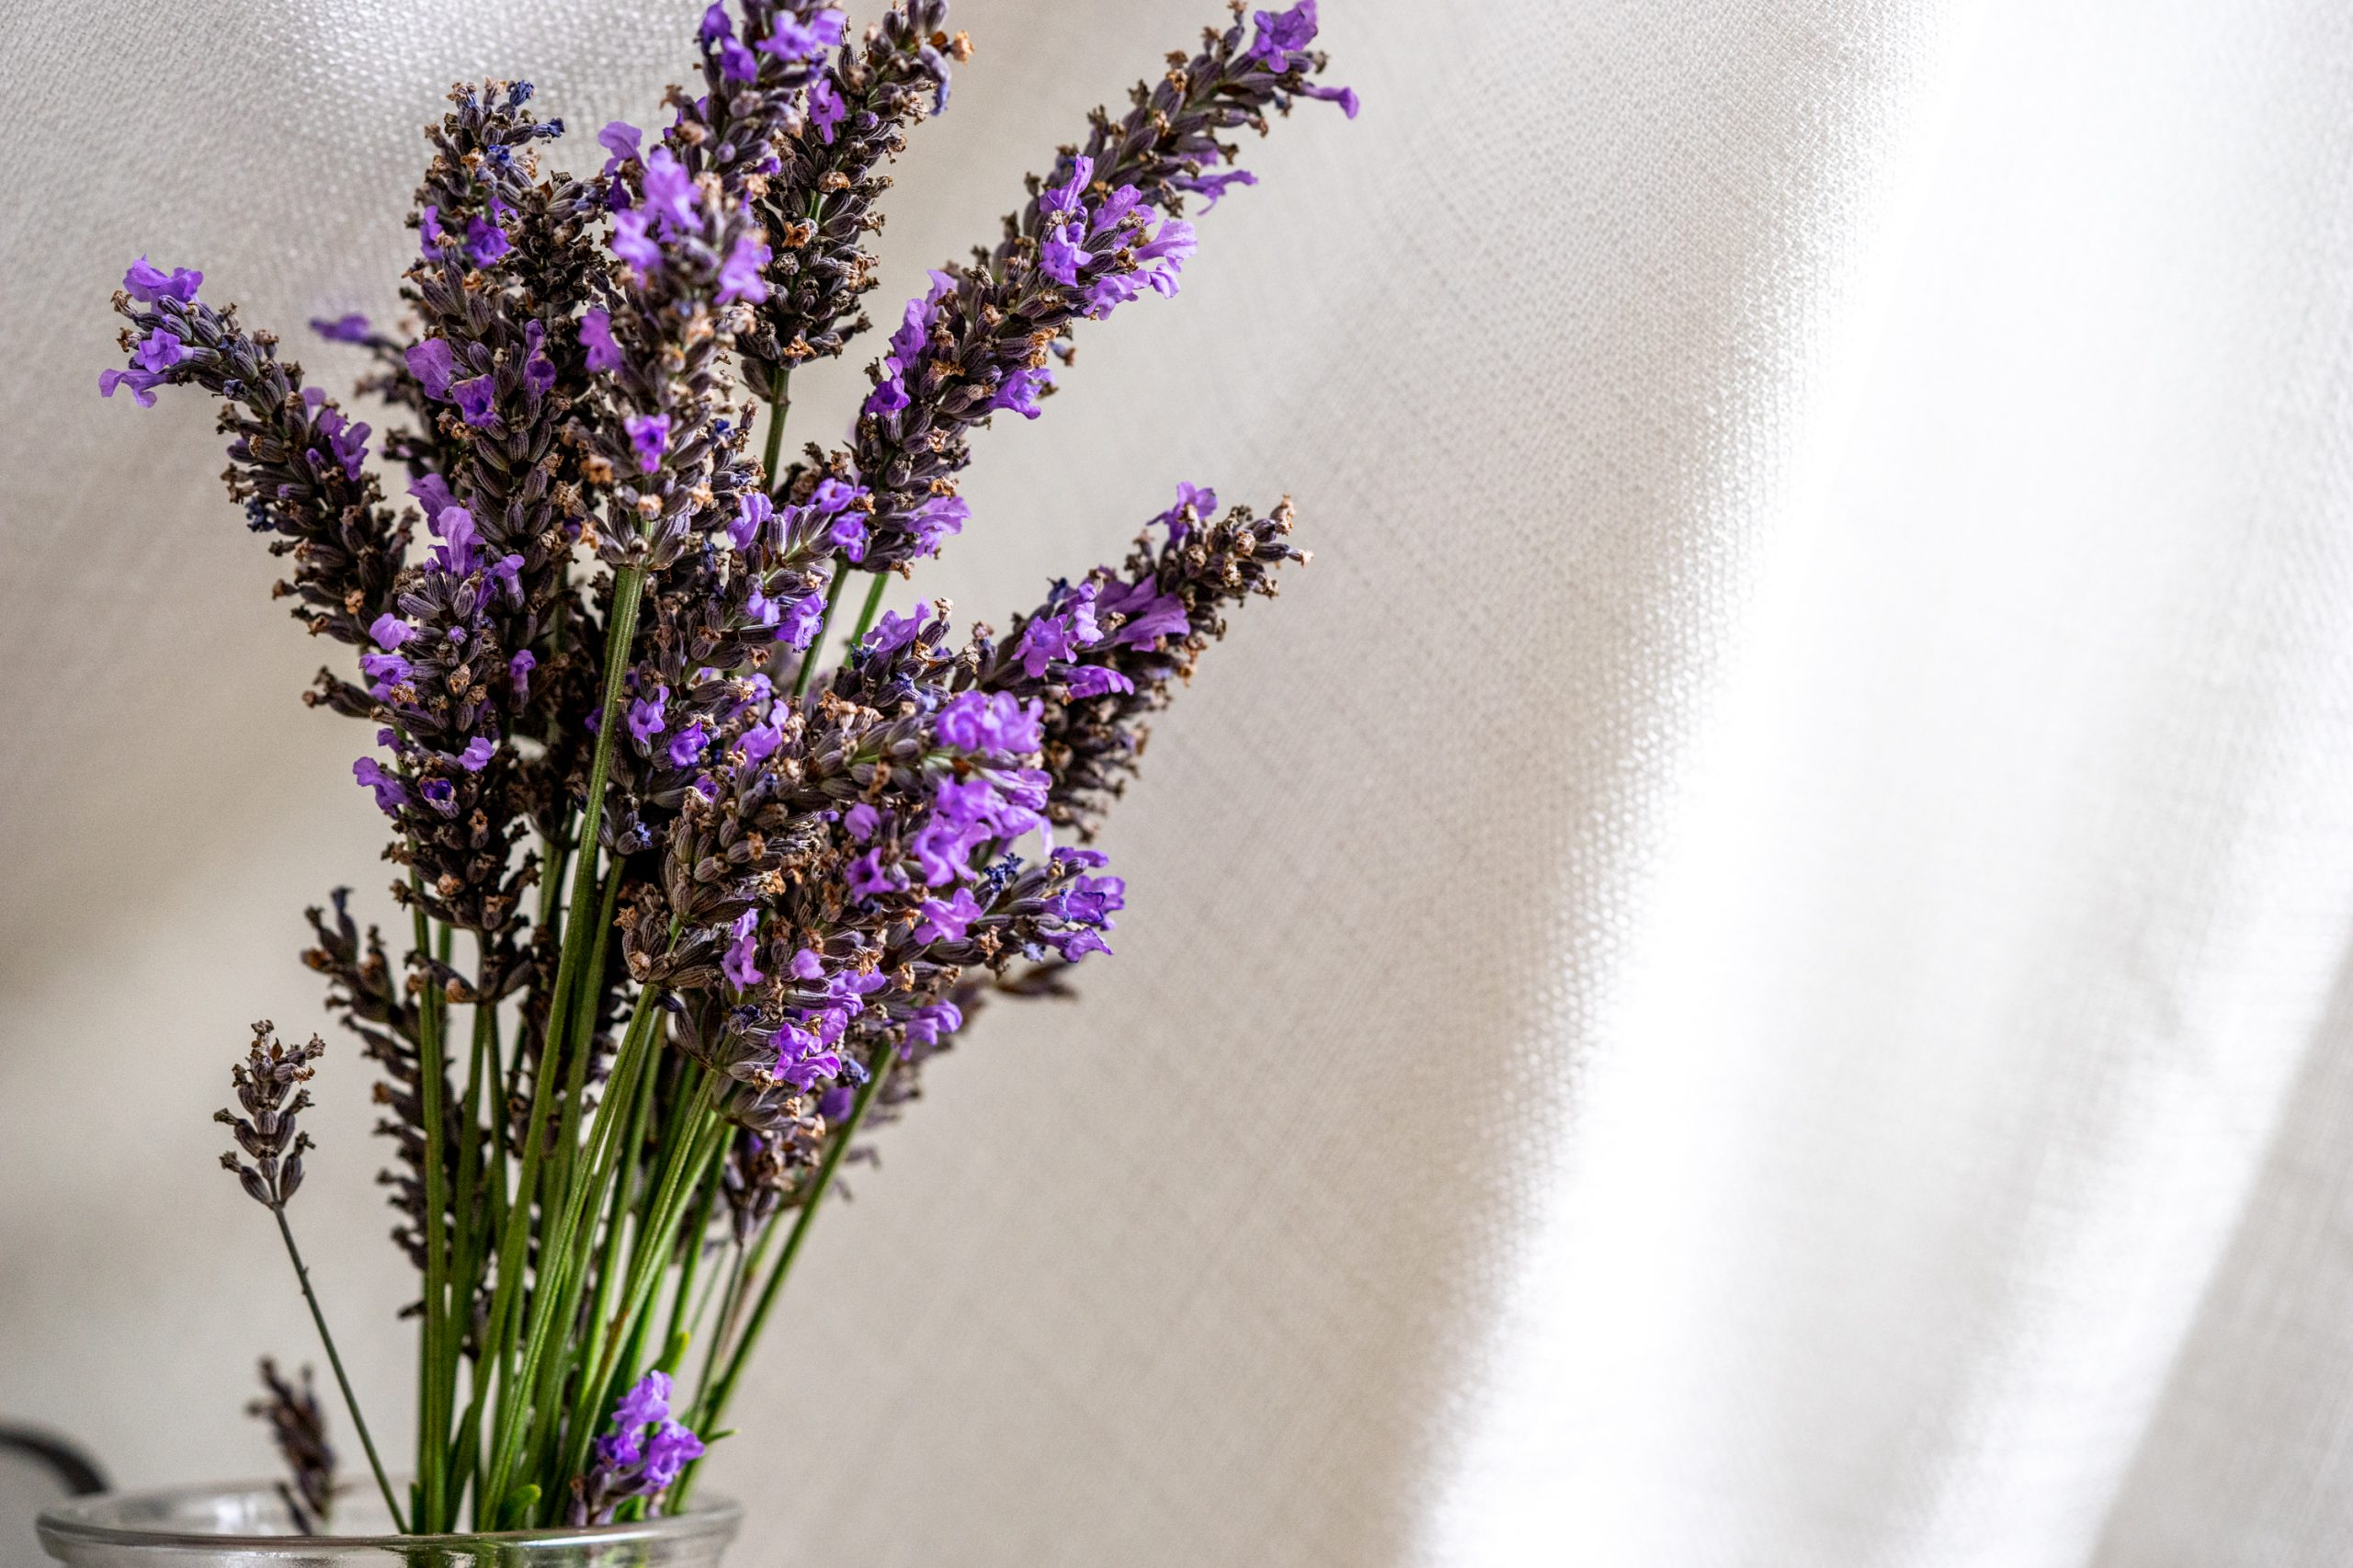 A bouquet of lavender in a vase